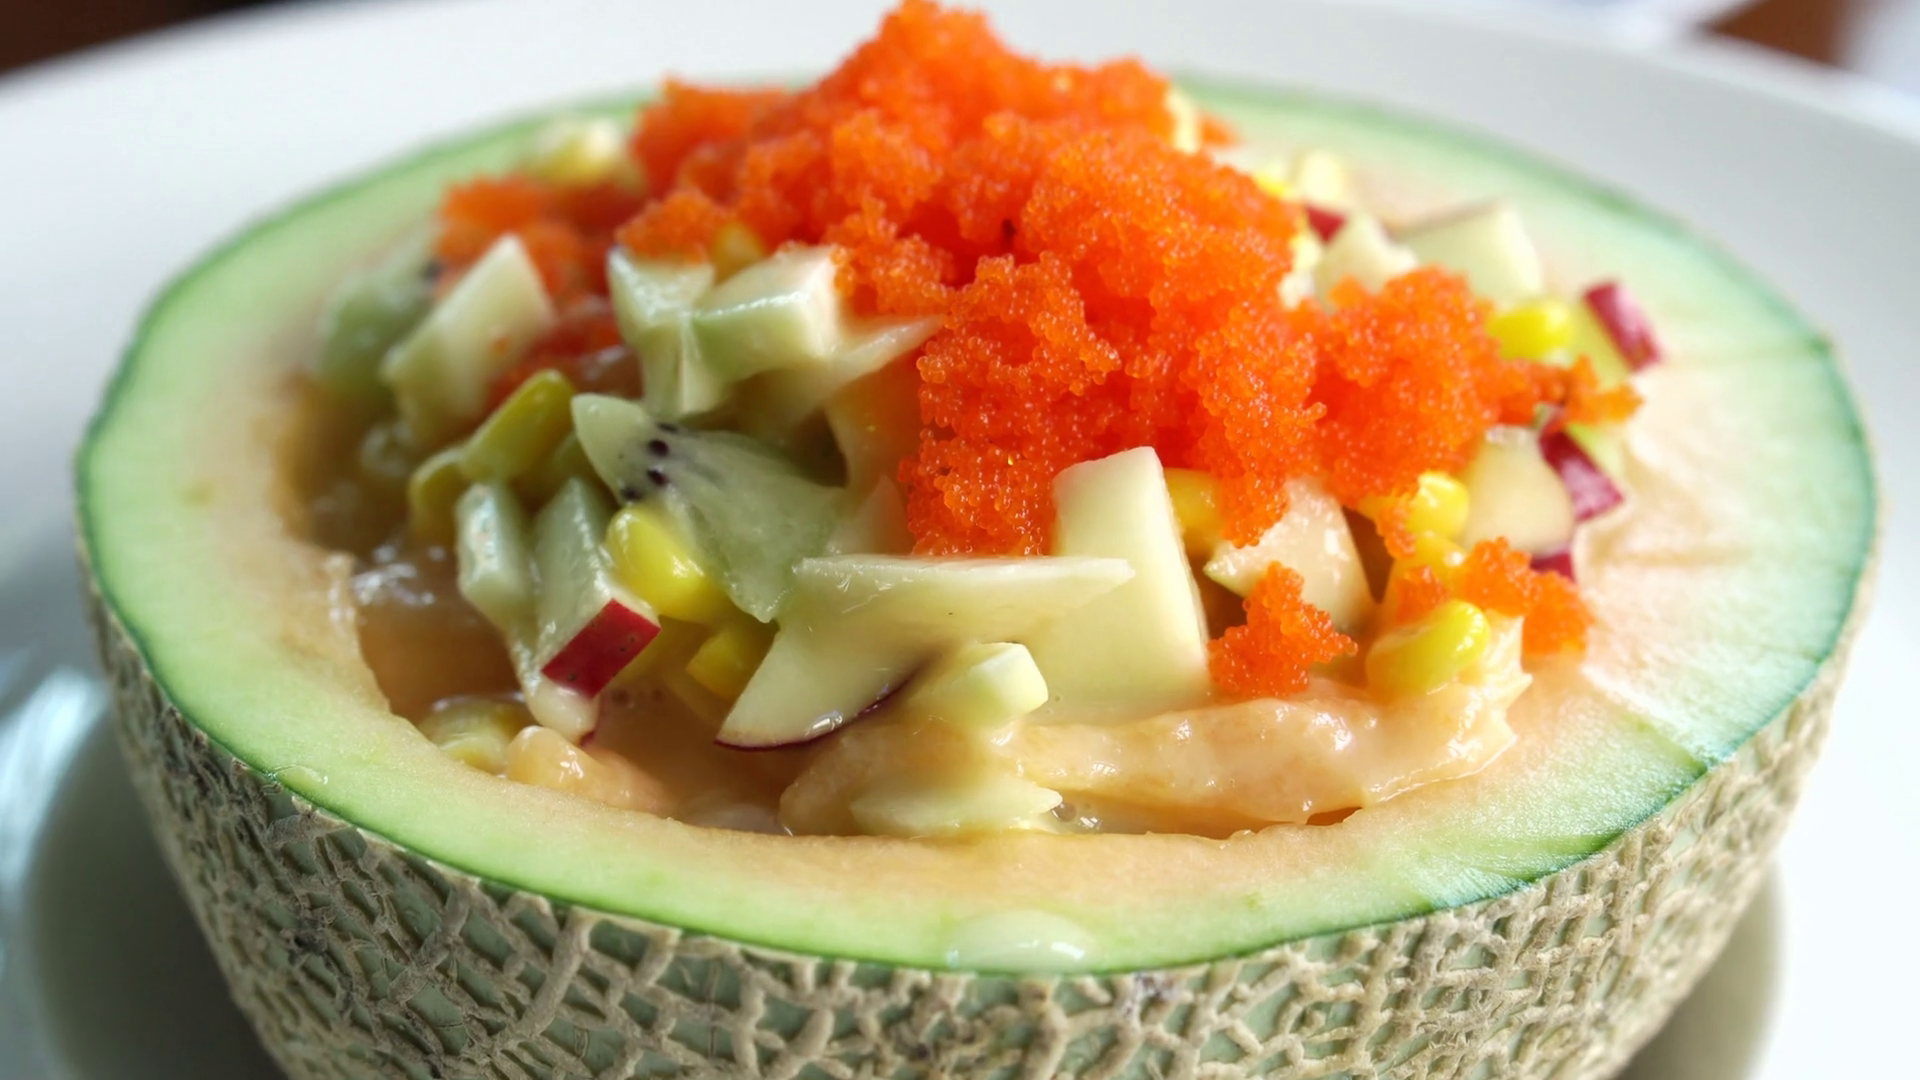 Cantaloupe Bowl : It also takes a while to eat it.